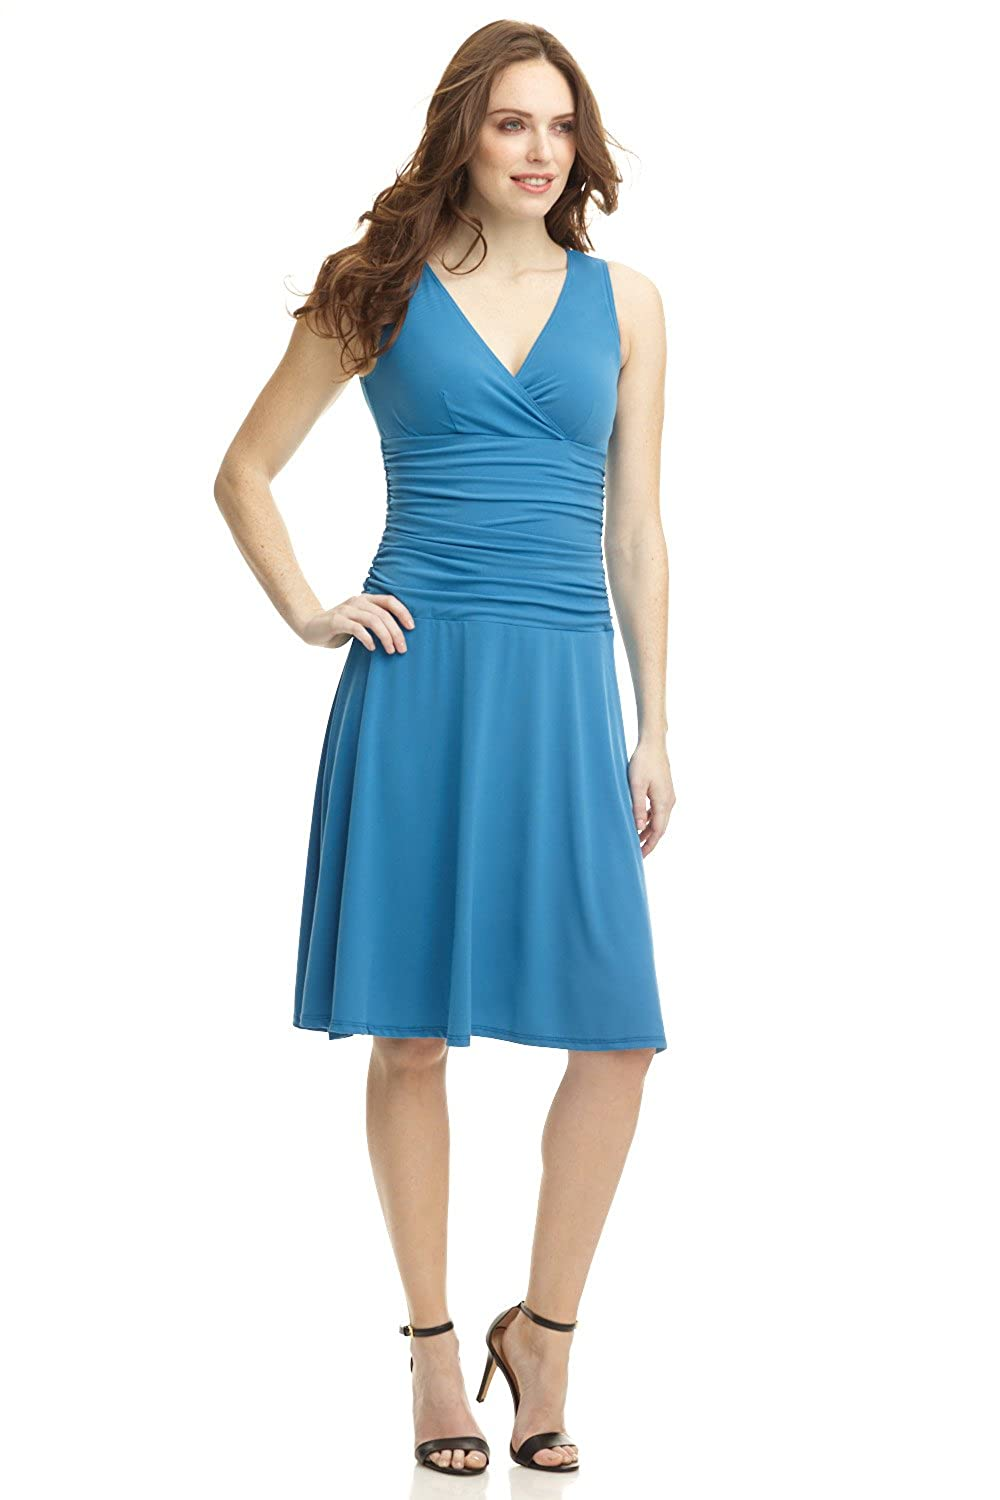 Rekucci Women\'s Slimming Sleeveless Fit-and-Flare Tummy Control ...